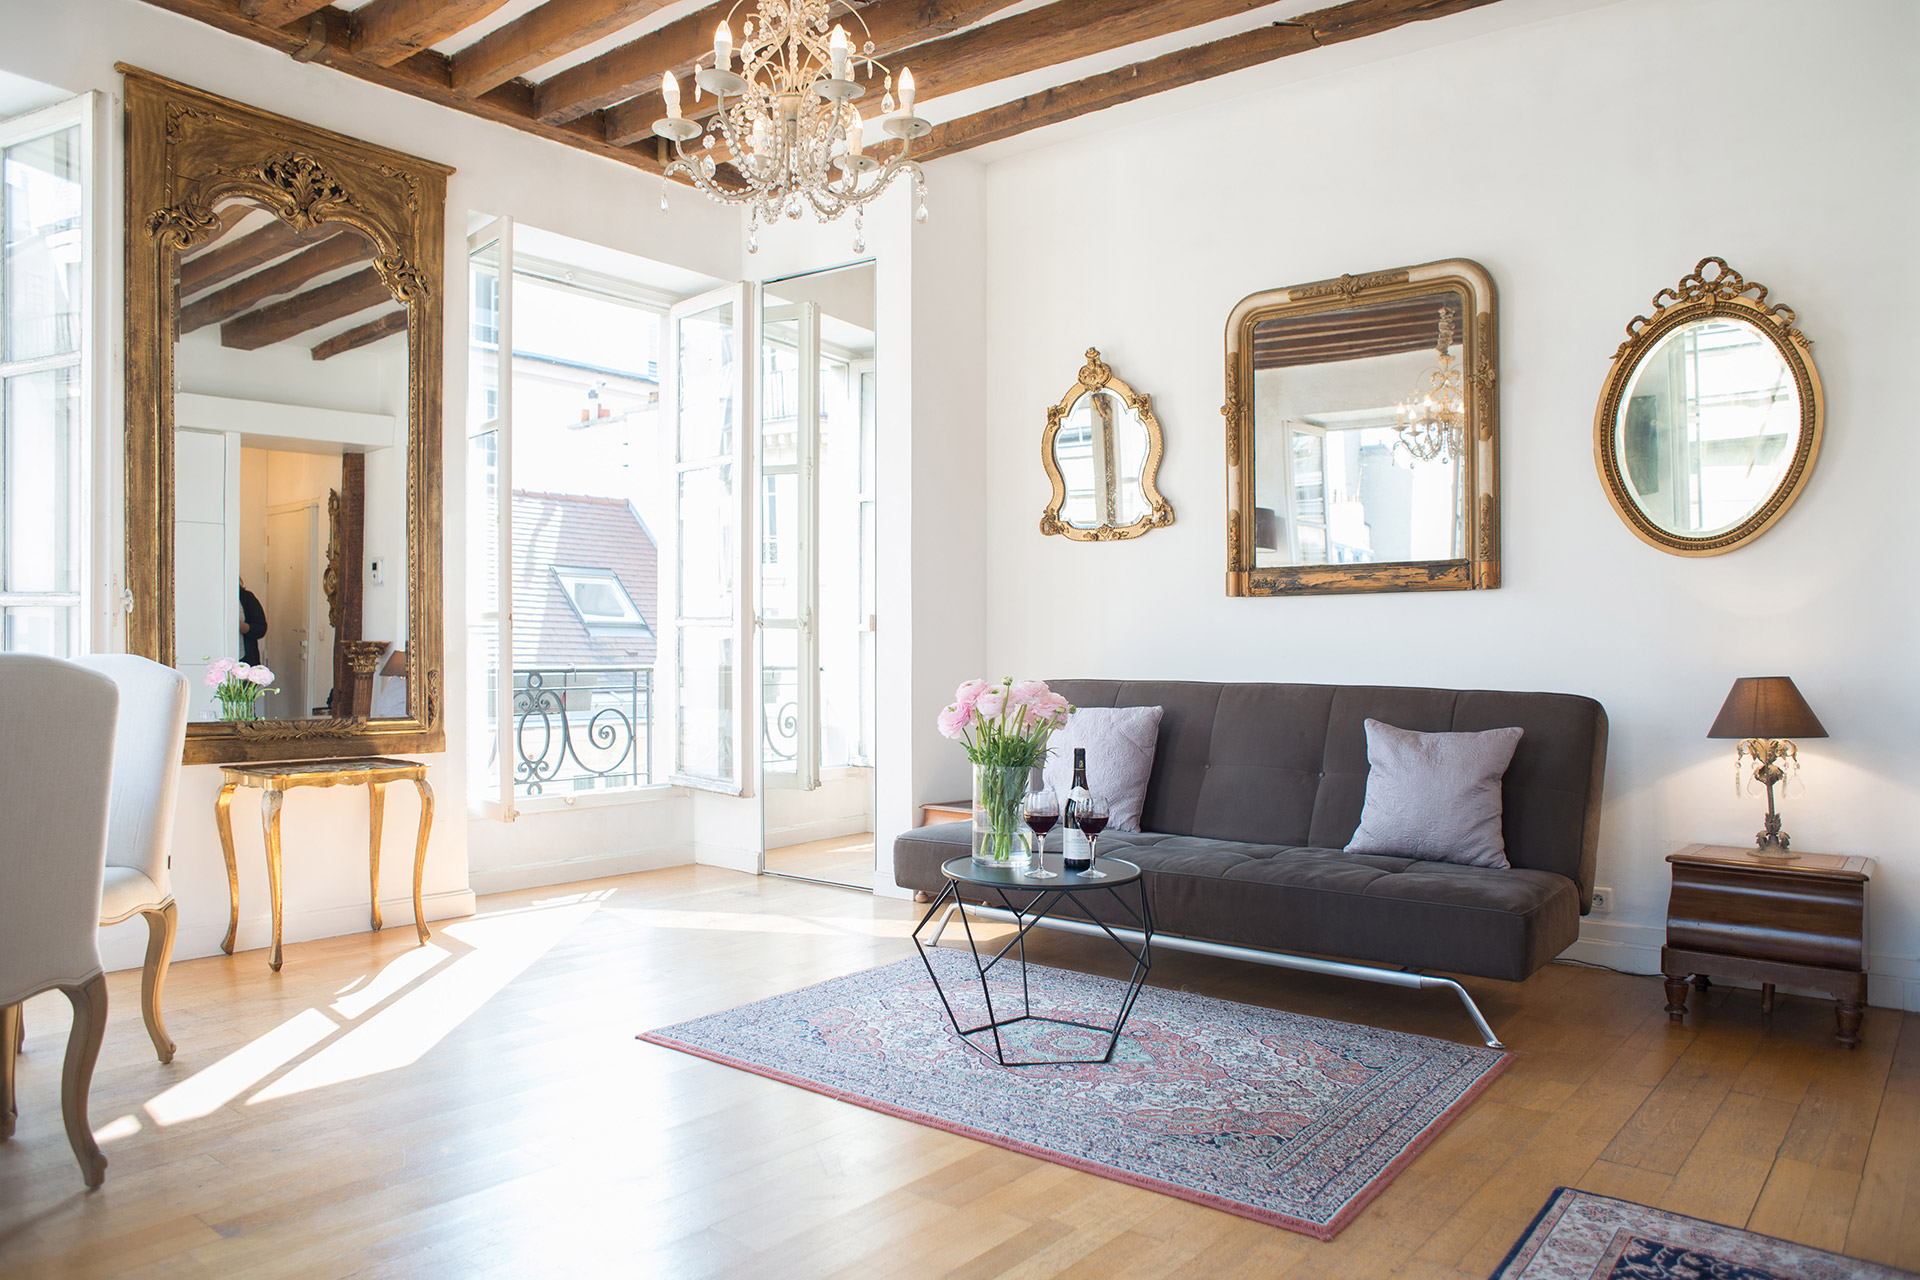 1 Bed Bath Paris Vacation Rental In The 6th Arrondist